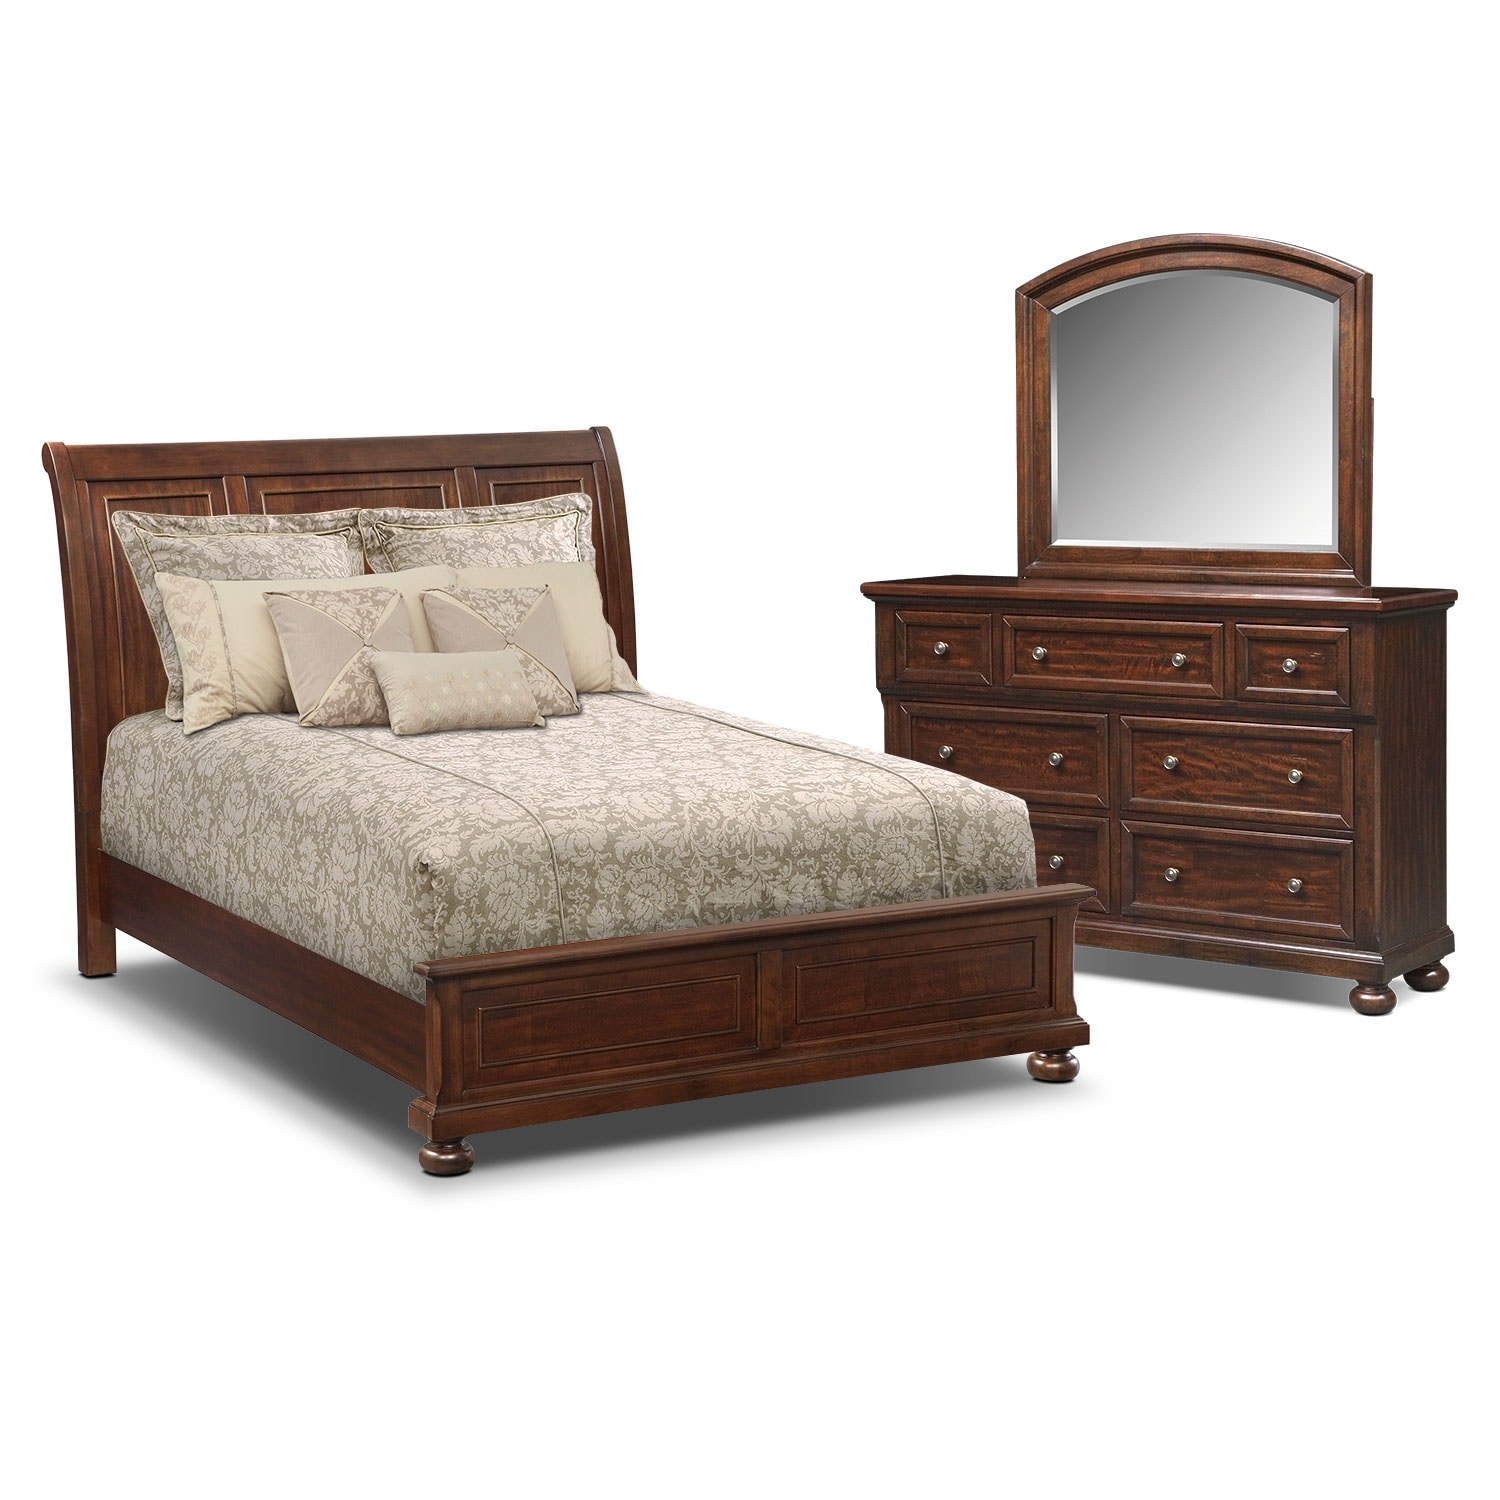 The hanover panel bedroom collection cherry american signature furniture American home furniture bedroom sets